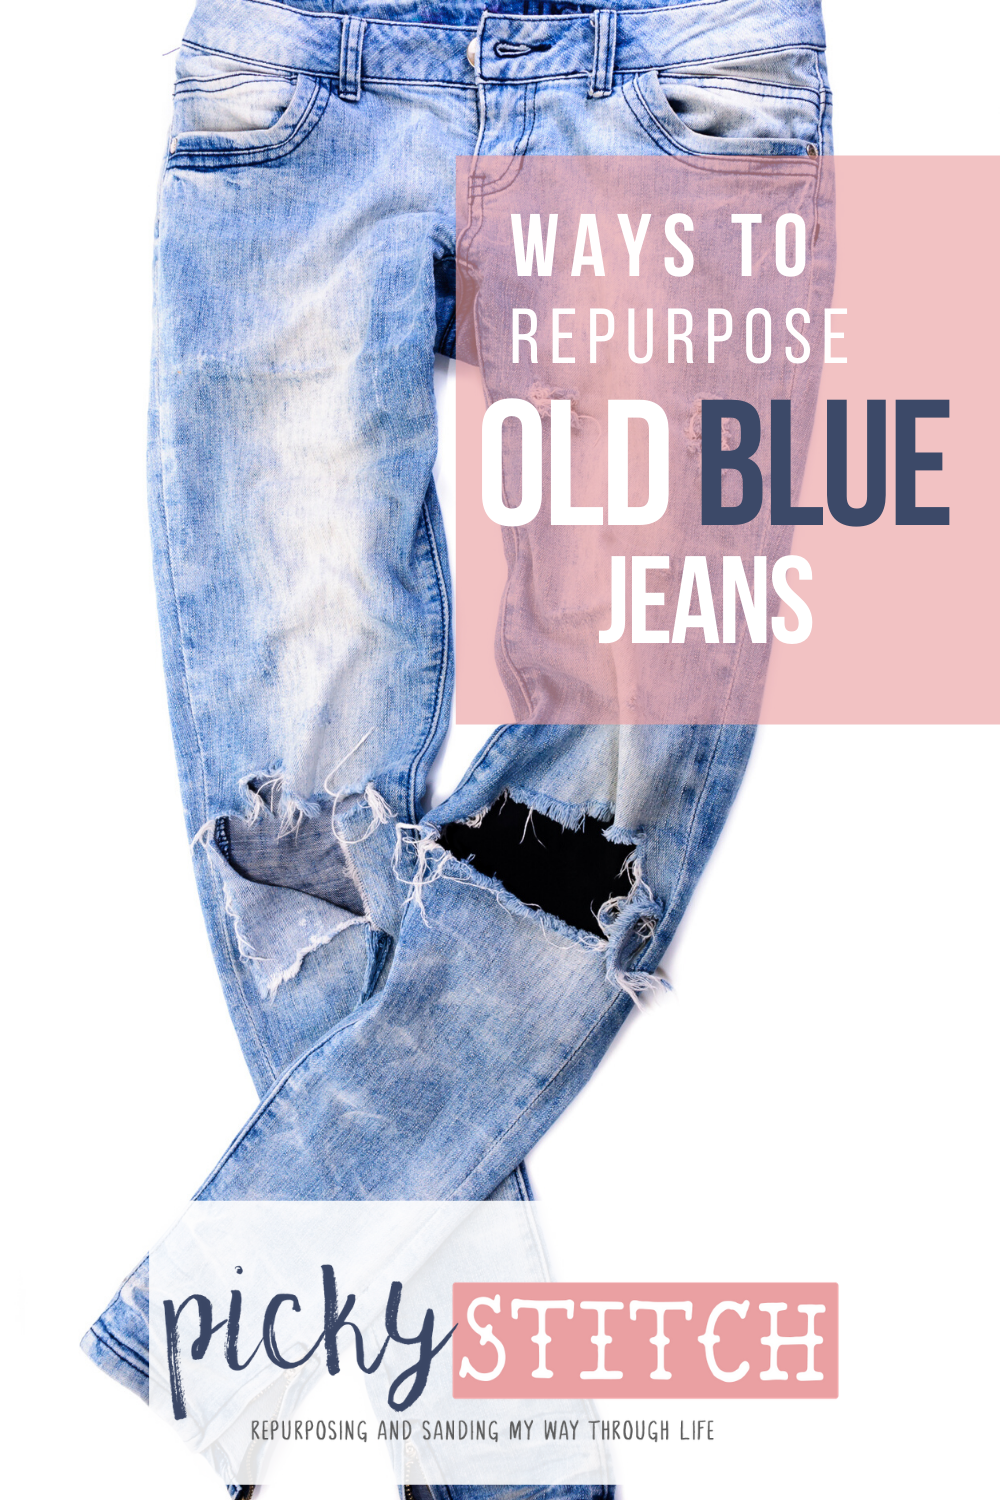 Your favorite pair of old blue jeans are finally worn out. They have definitely seen better days. But, you don't have to throw them out. Take a look at some great ways to reuse them by reading this post. DIY crafts for your favorite old blue jeans. Because parting with them just isn't going to happen. #Oldbluejeansideas #resuseoldbluejeans #repurporseoldbluejeans